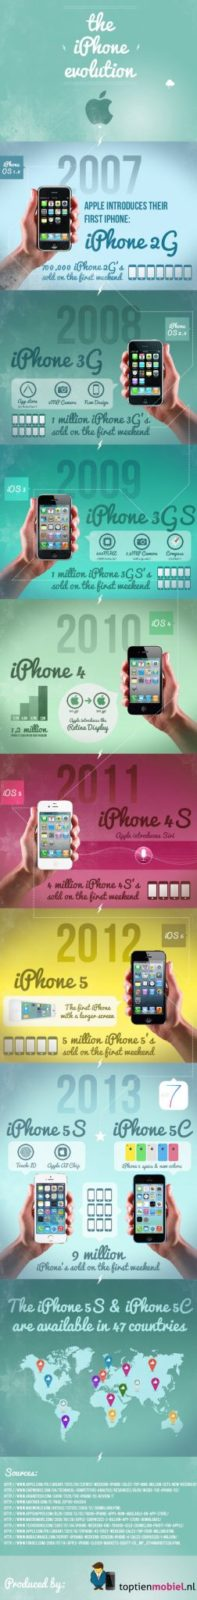 The Apple iPhone Evolution - Infographic